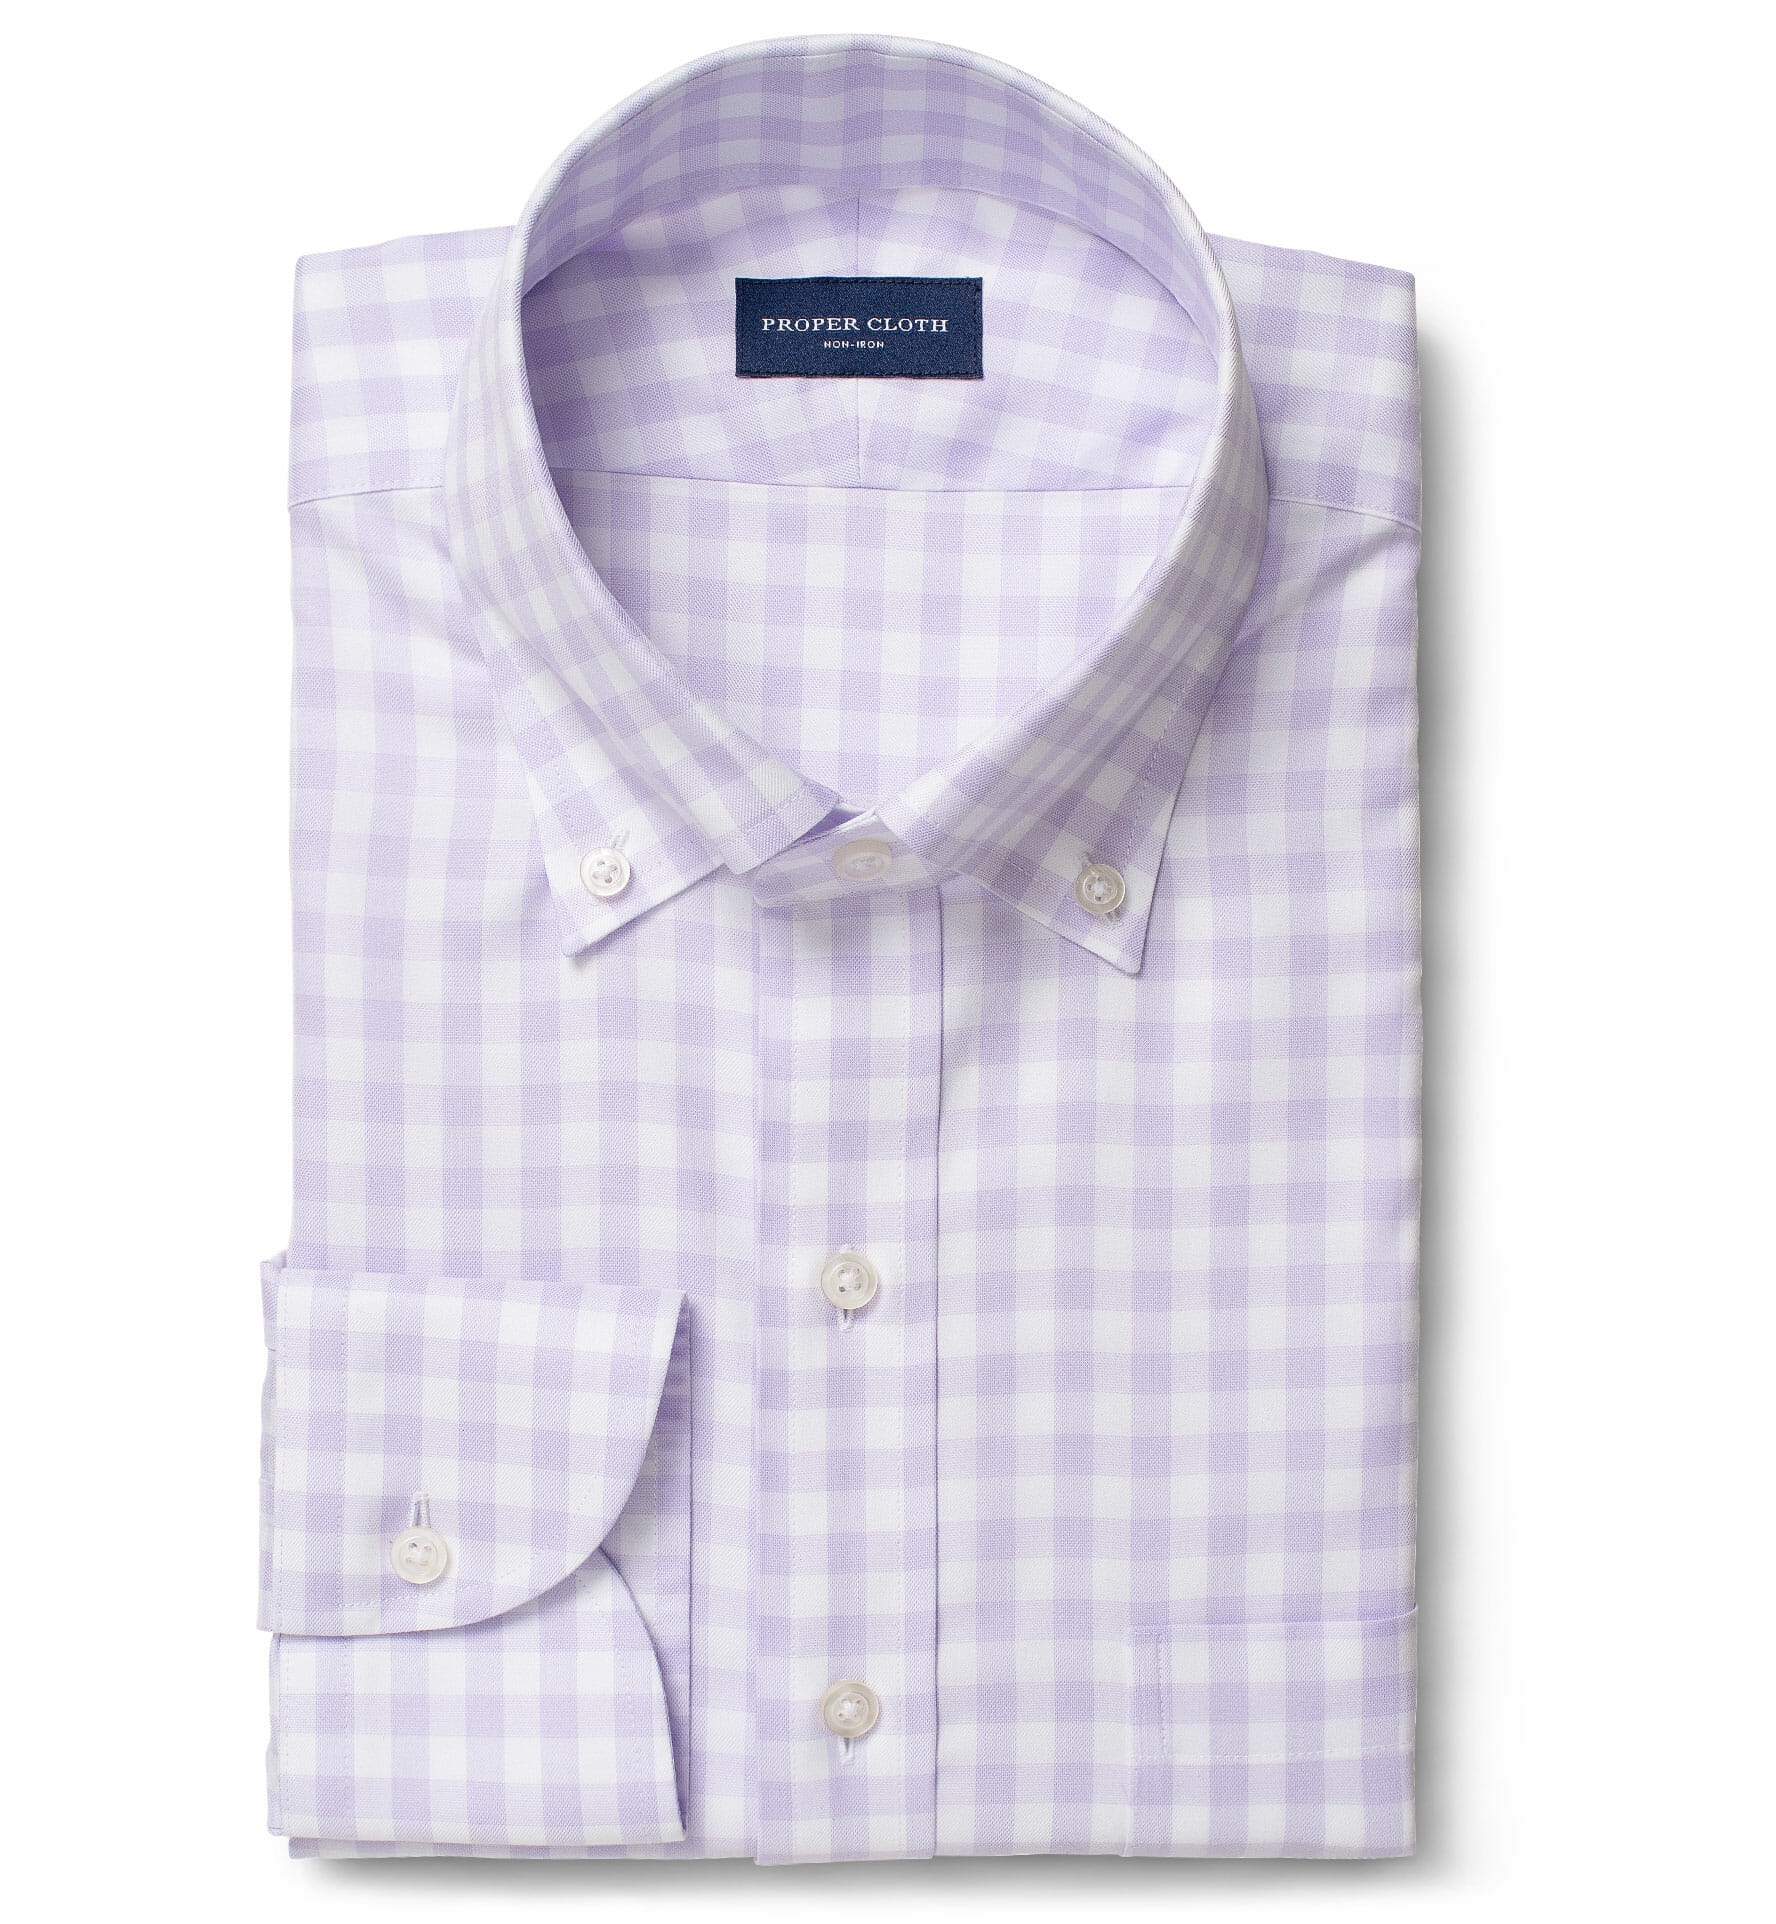 Ties that go with purple shirts